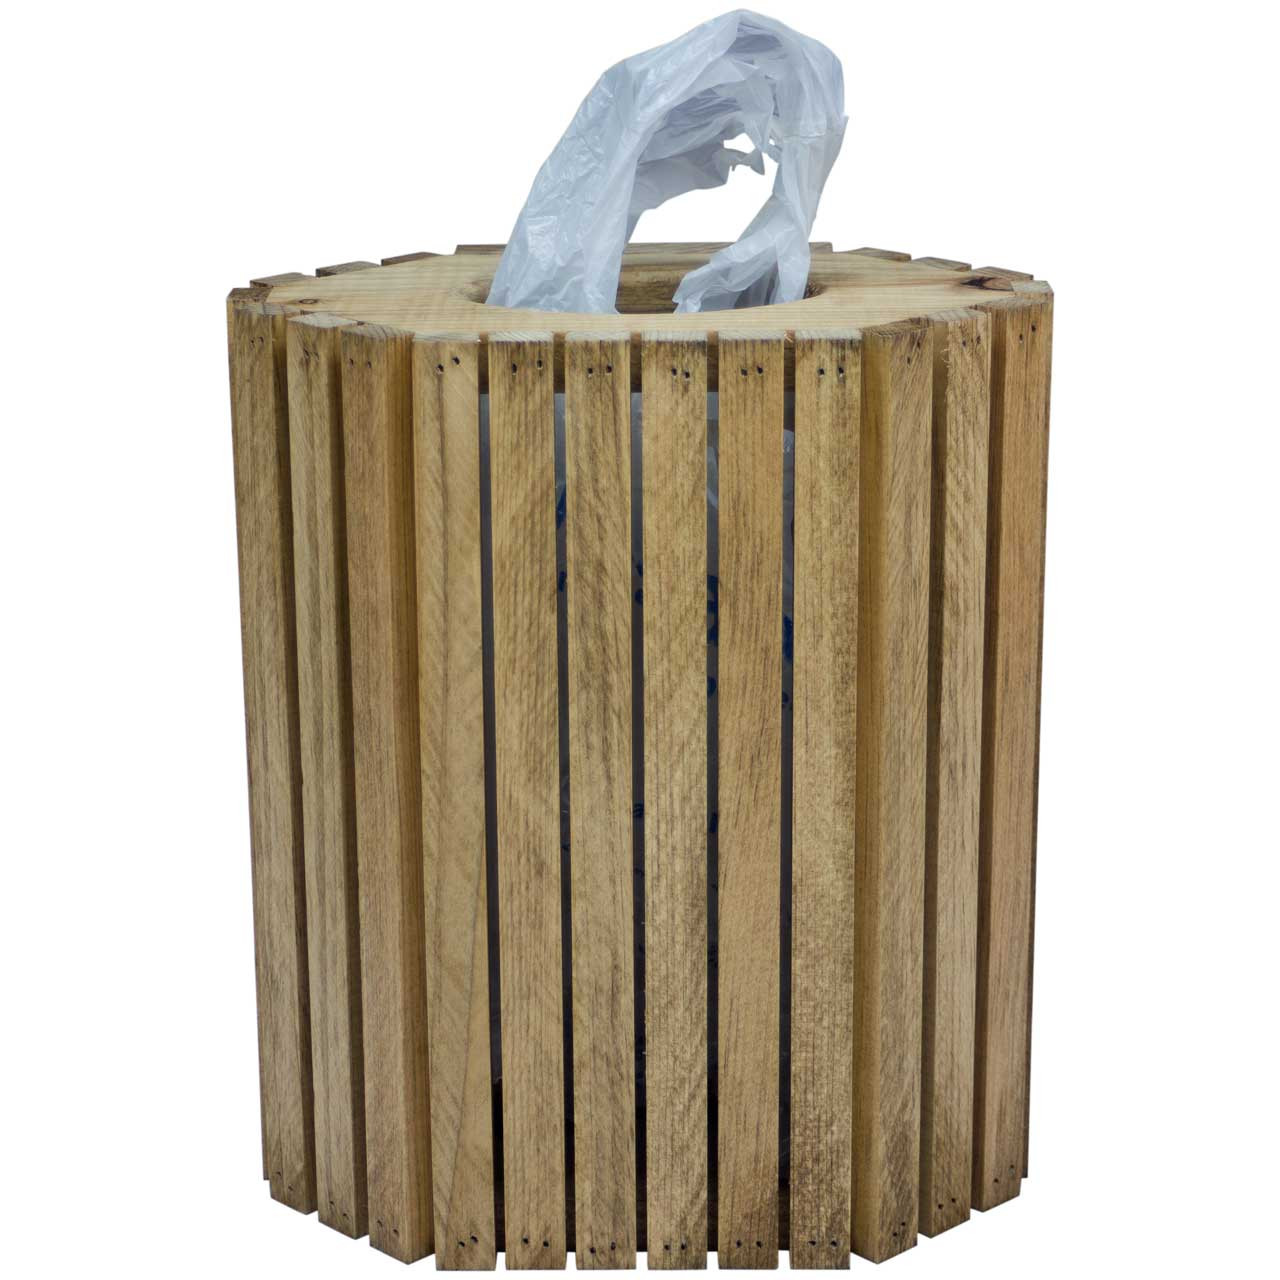 Wooden Plastic Bag Dispenser Grocery Store Plastic Bag Holder